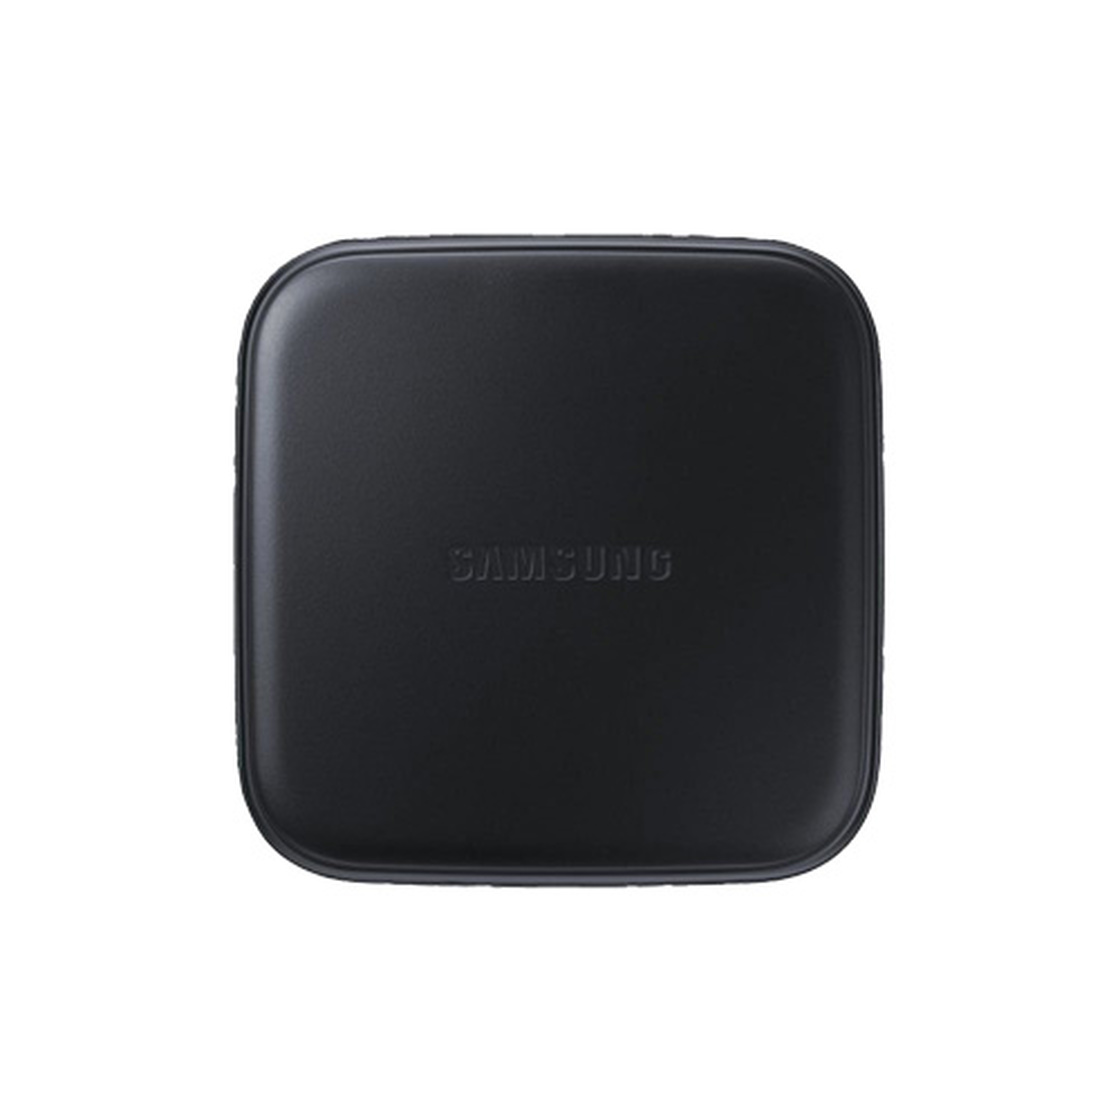 Handy Induktiv Laden Original Samsung Ep-pa510 Wireless Indutiv Charger, 39,90